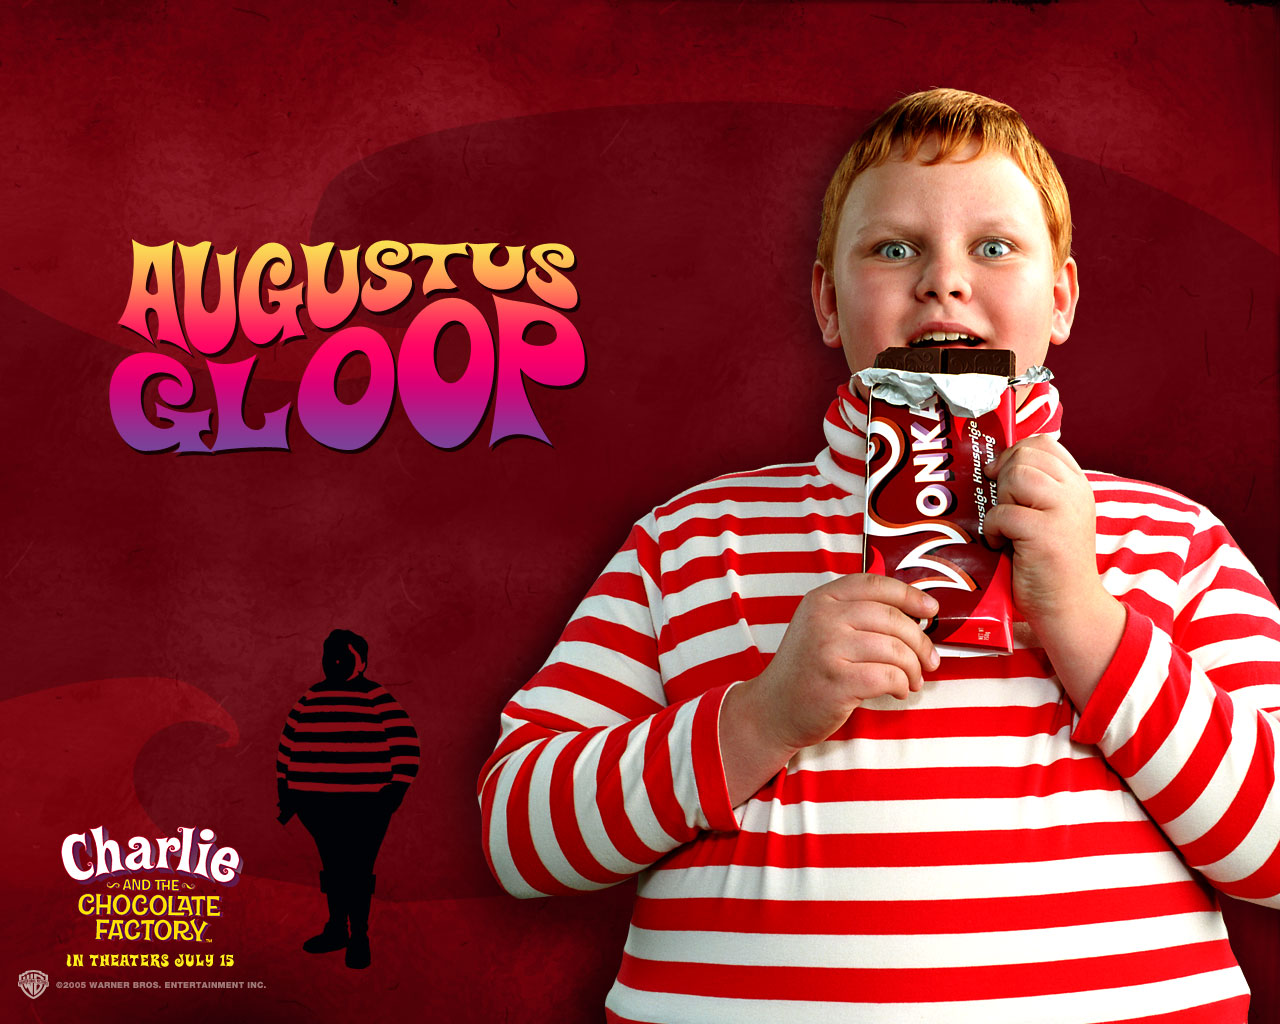 Willy Wonka - Augustus Gloop